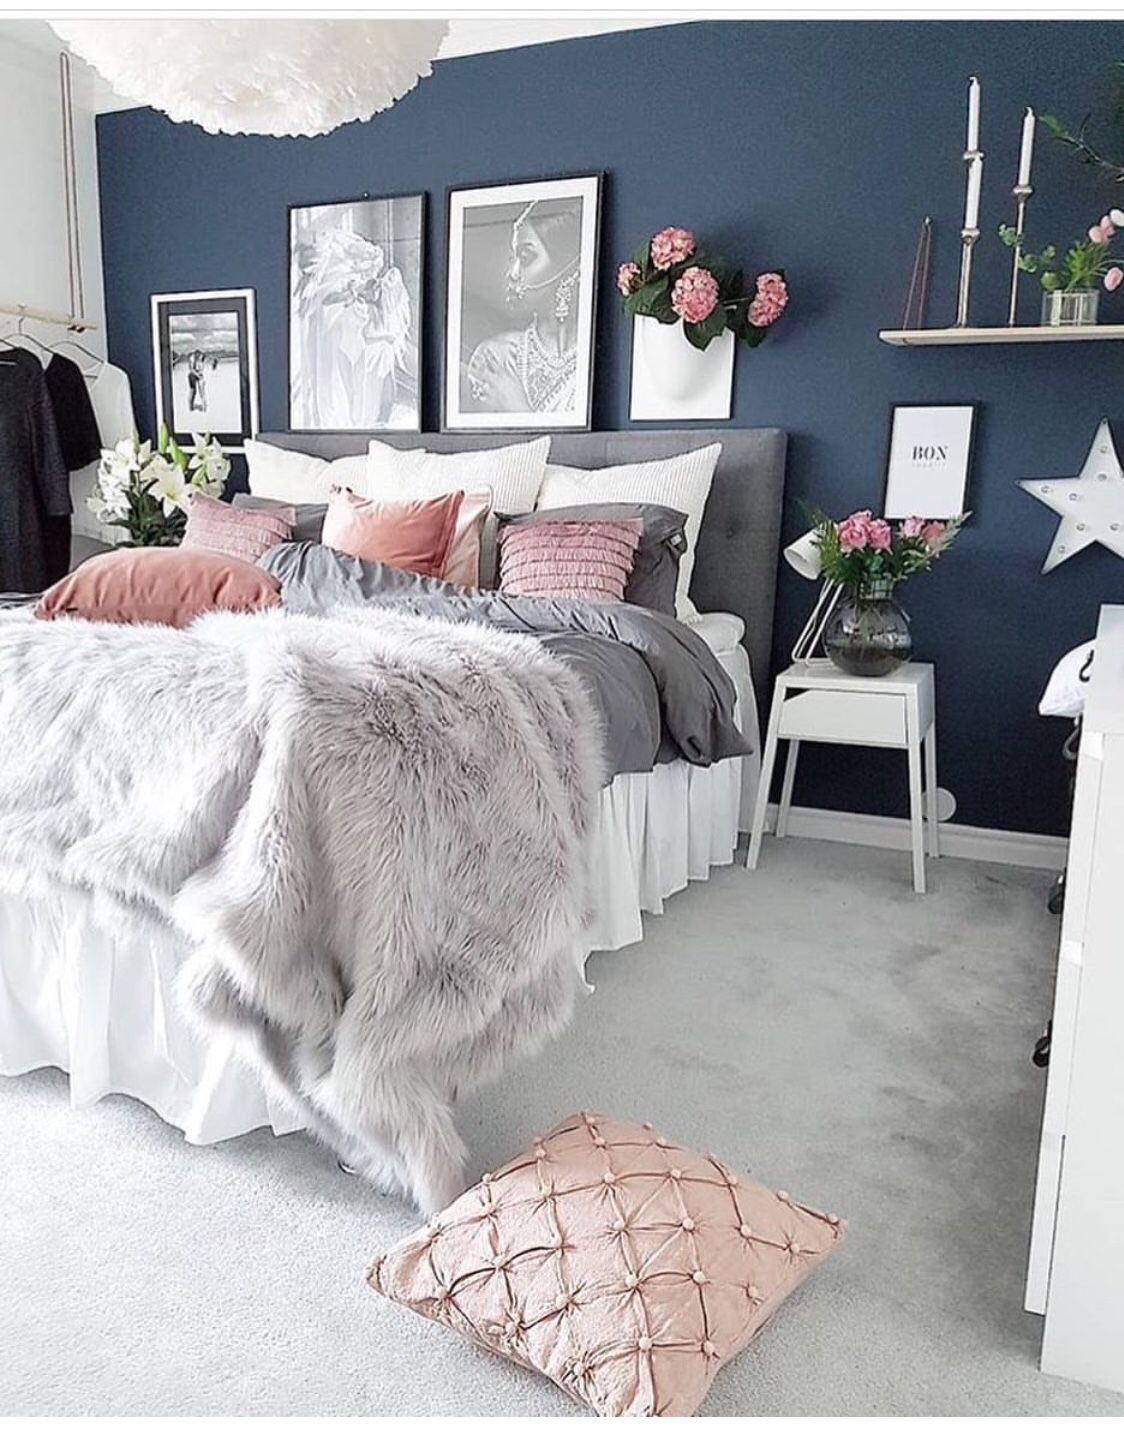 Pin By Karsyn Severs On Home So Sweet Bedroom Makeover Bedroom